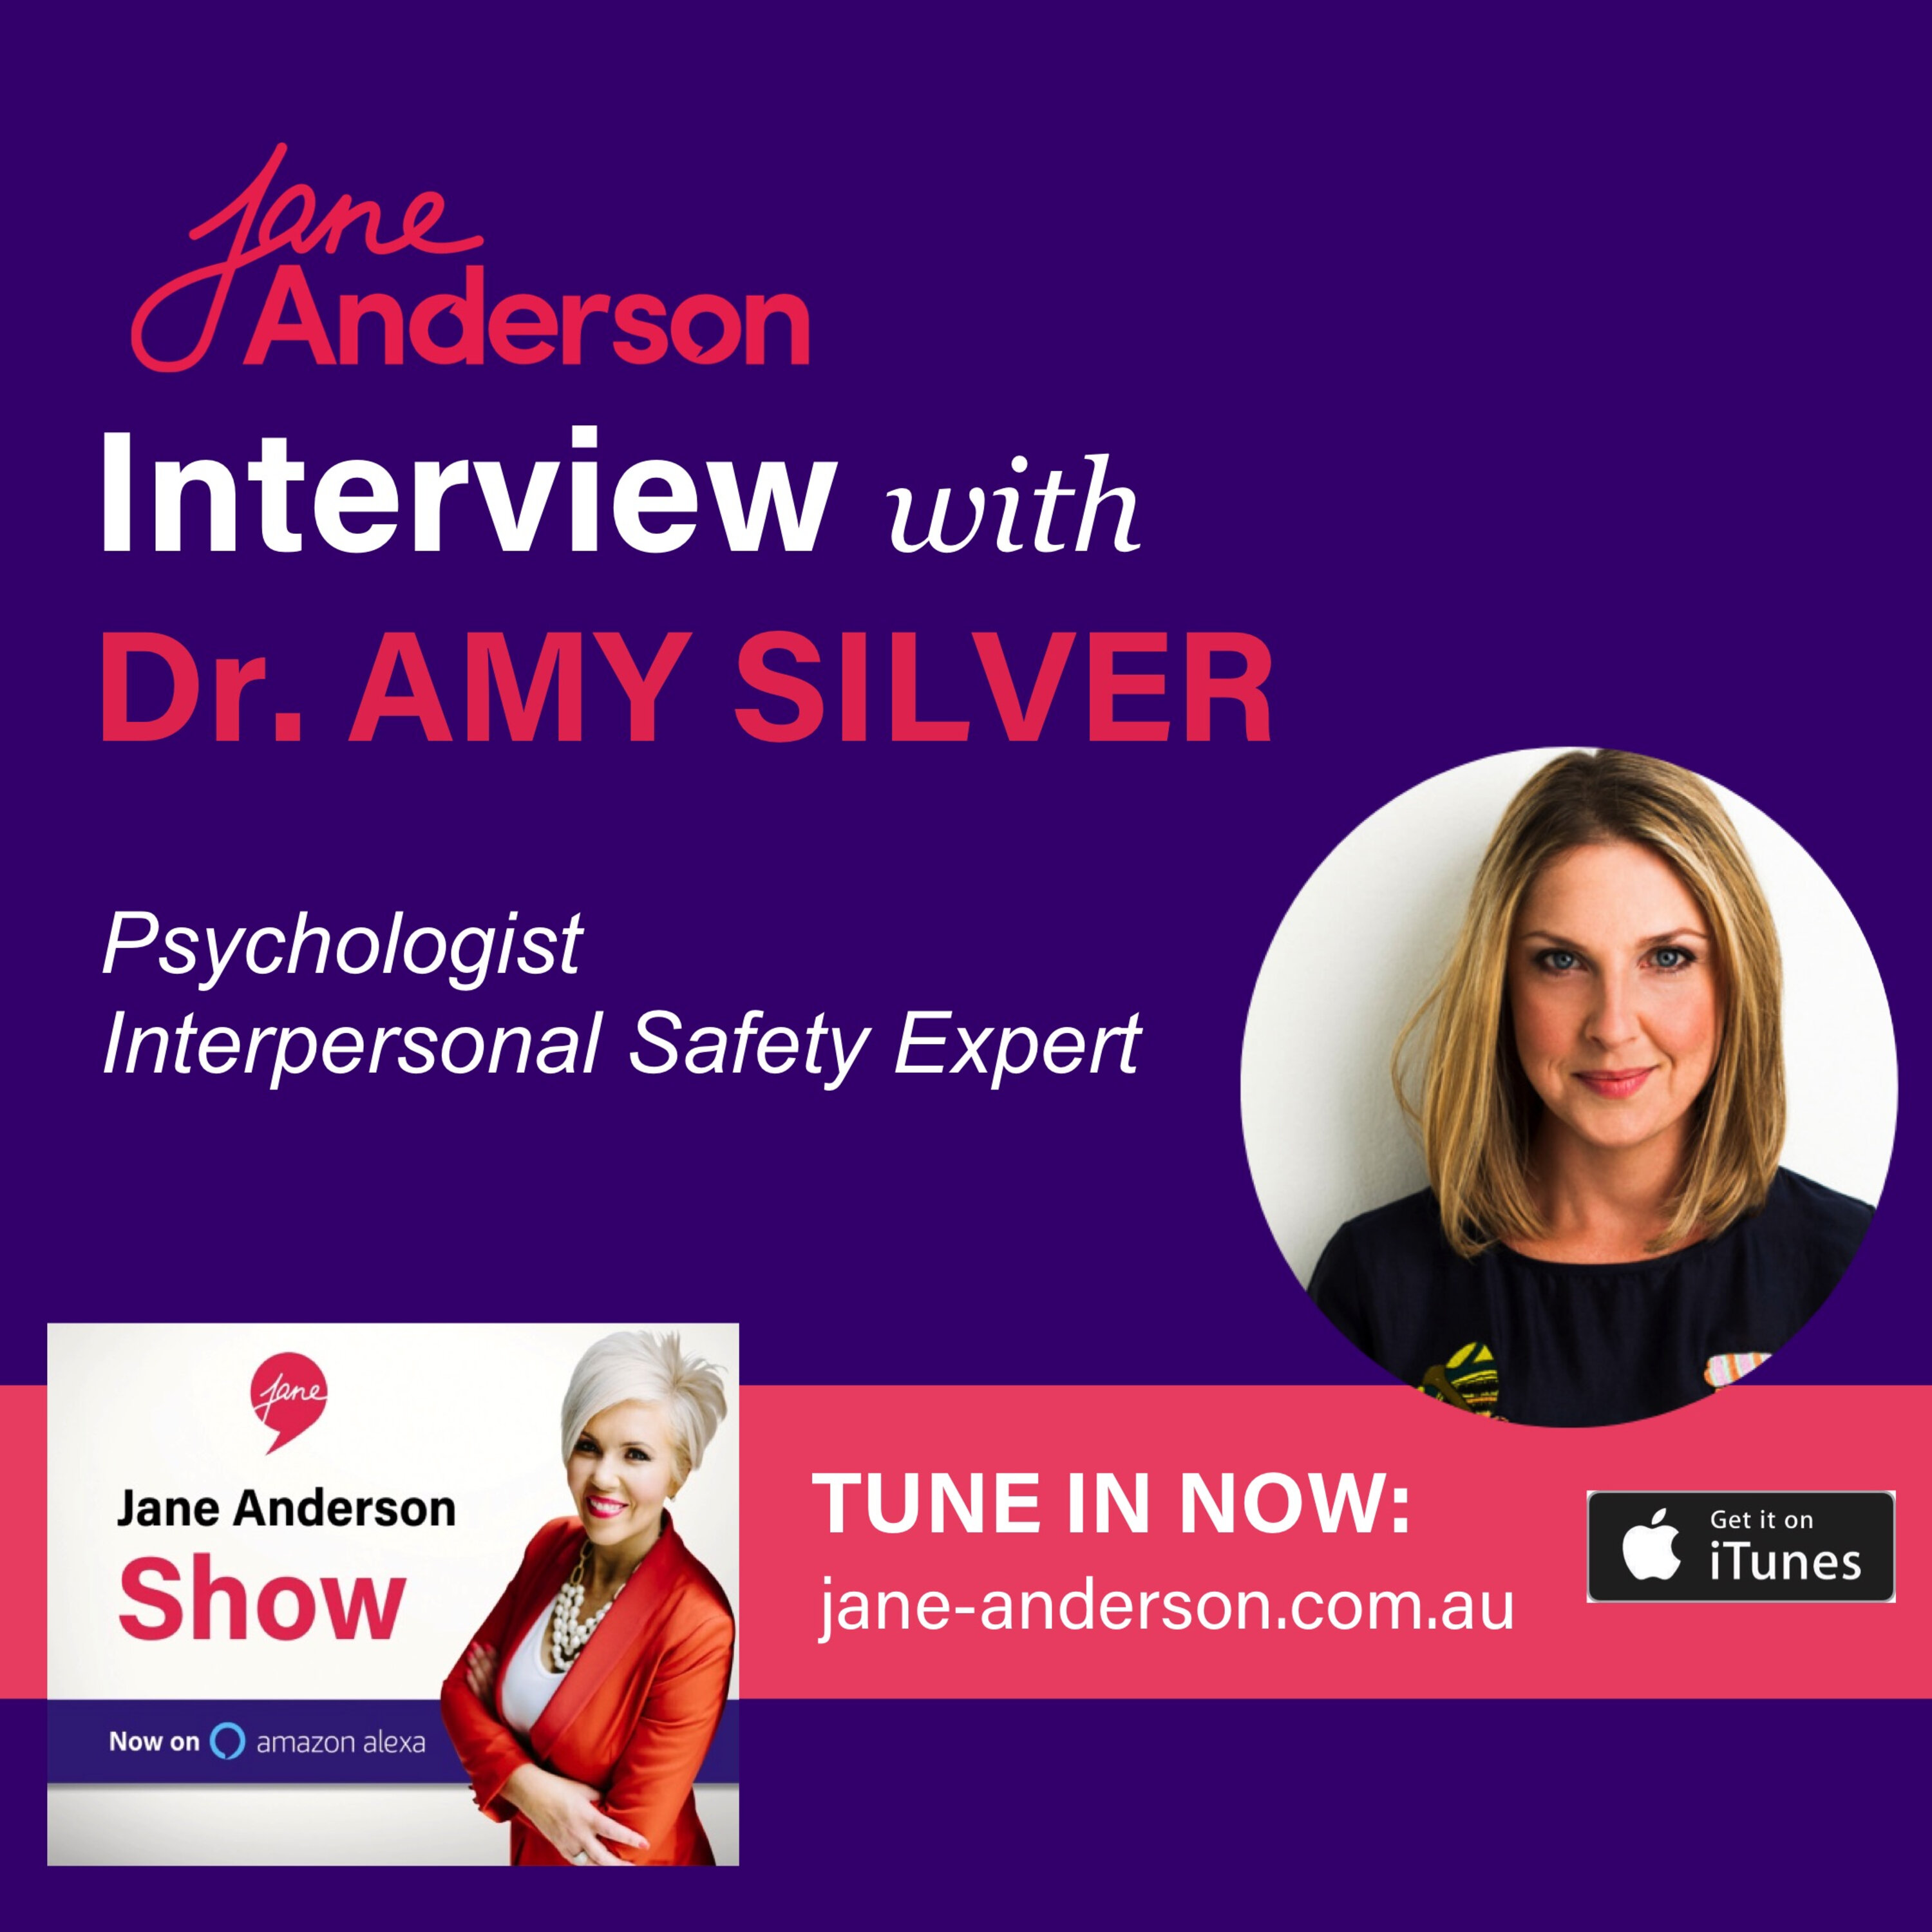 Episode 40 - Interview with Interpersonal Safety Expert Dr. Amy Silver